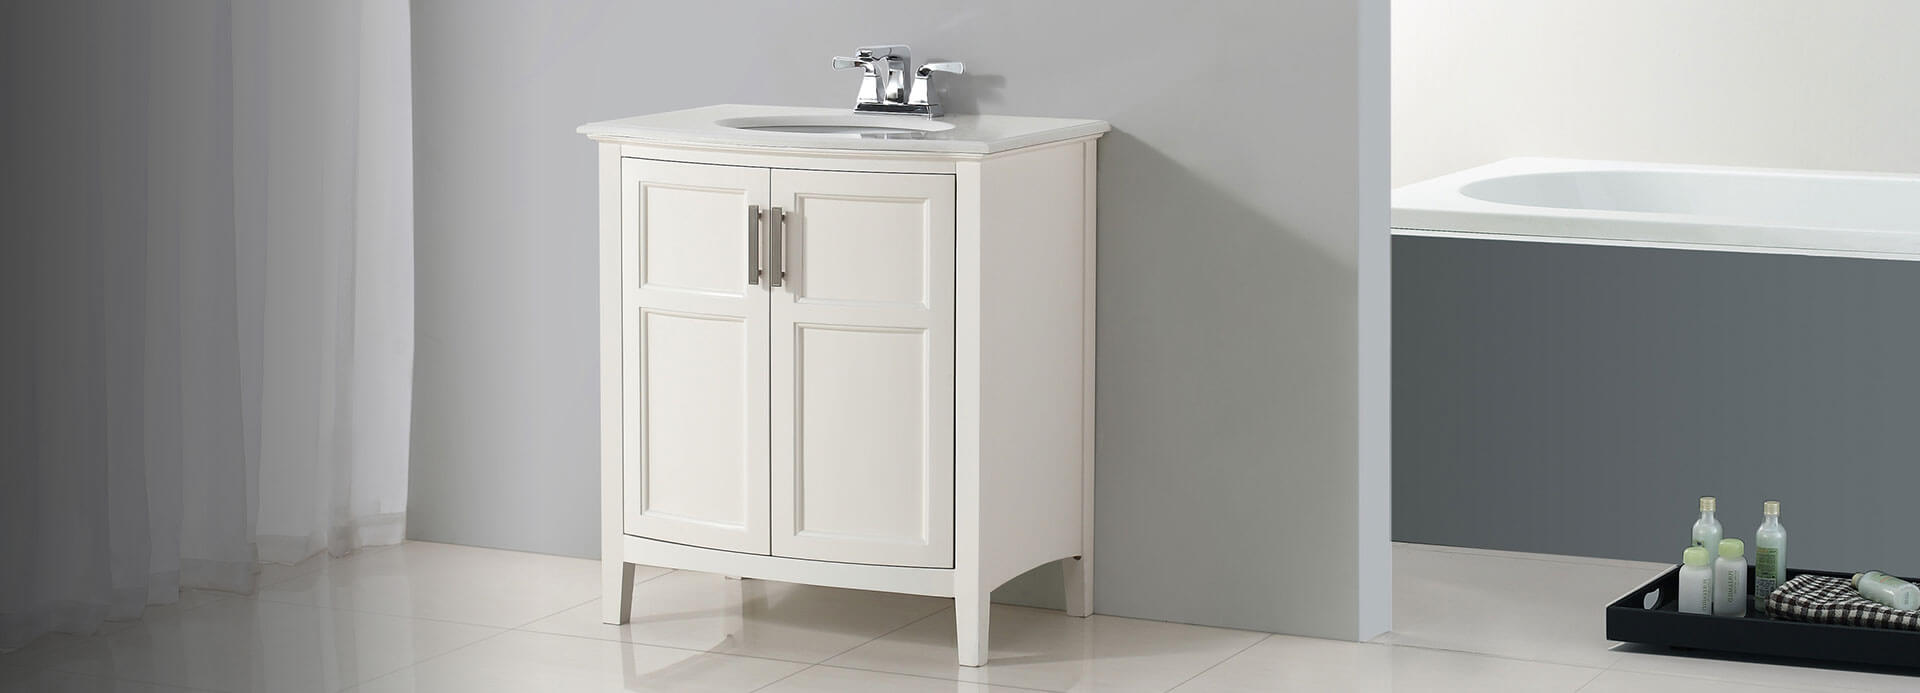 Bathroom furniture - Picture of bathroom ...